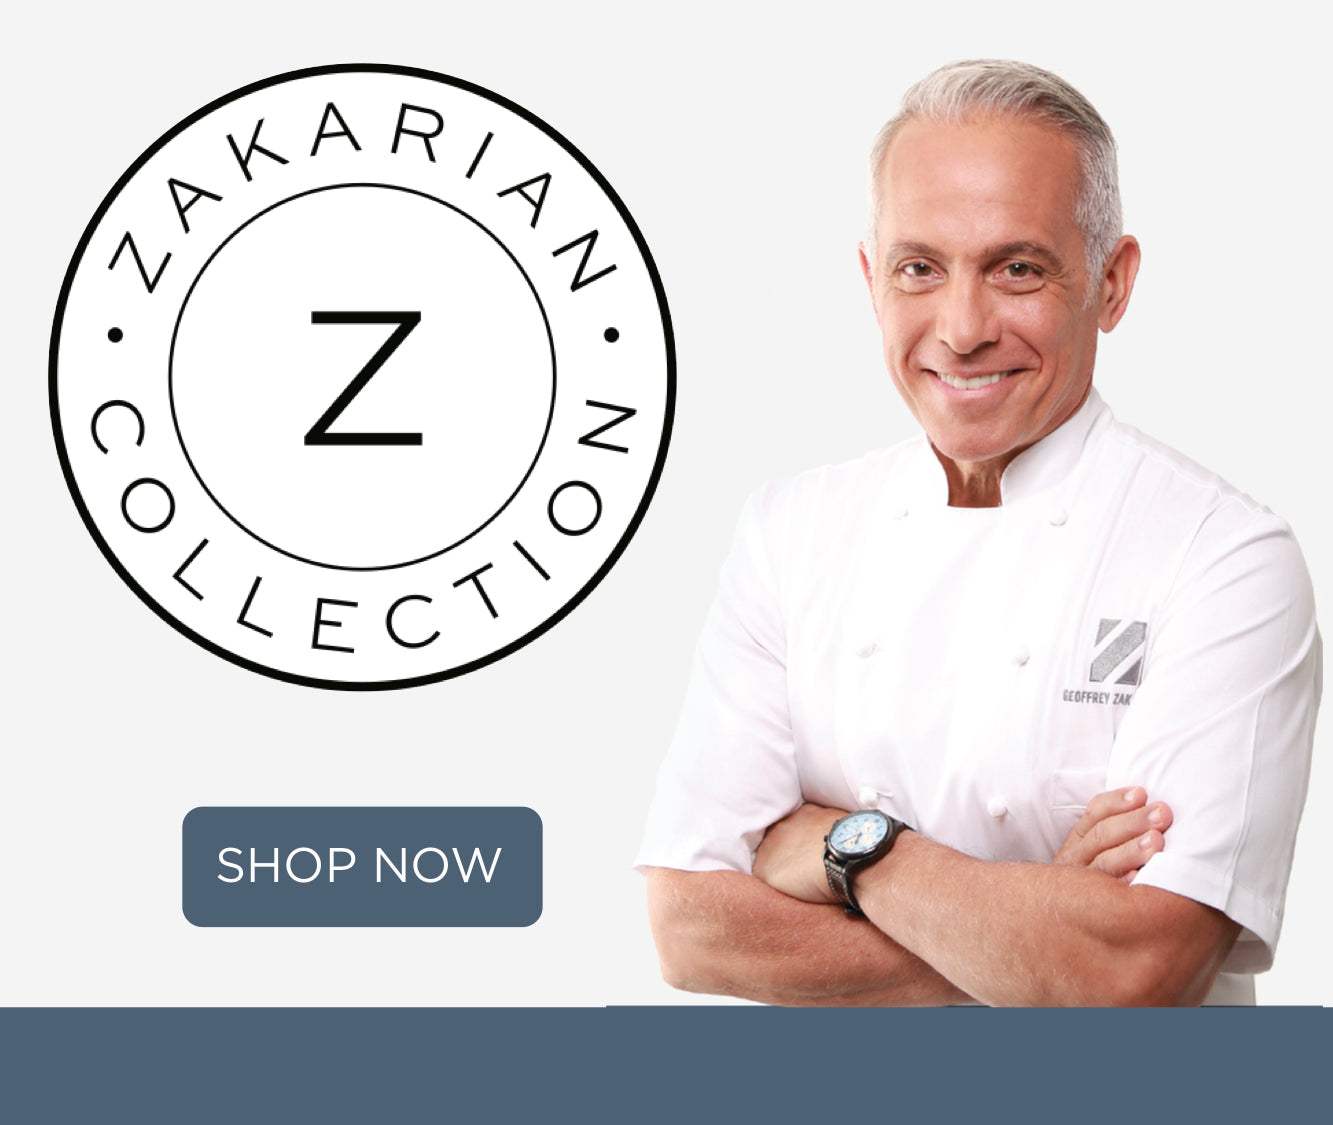 Zakarian Collection